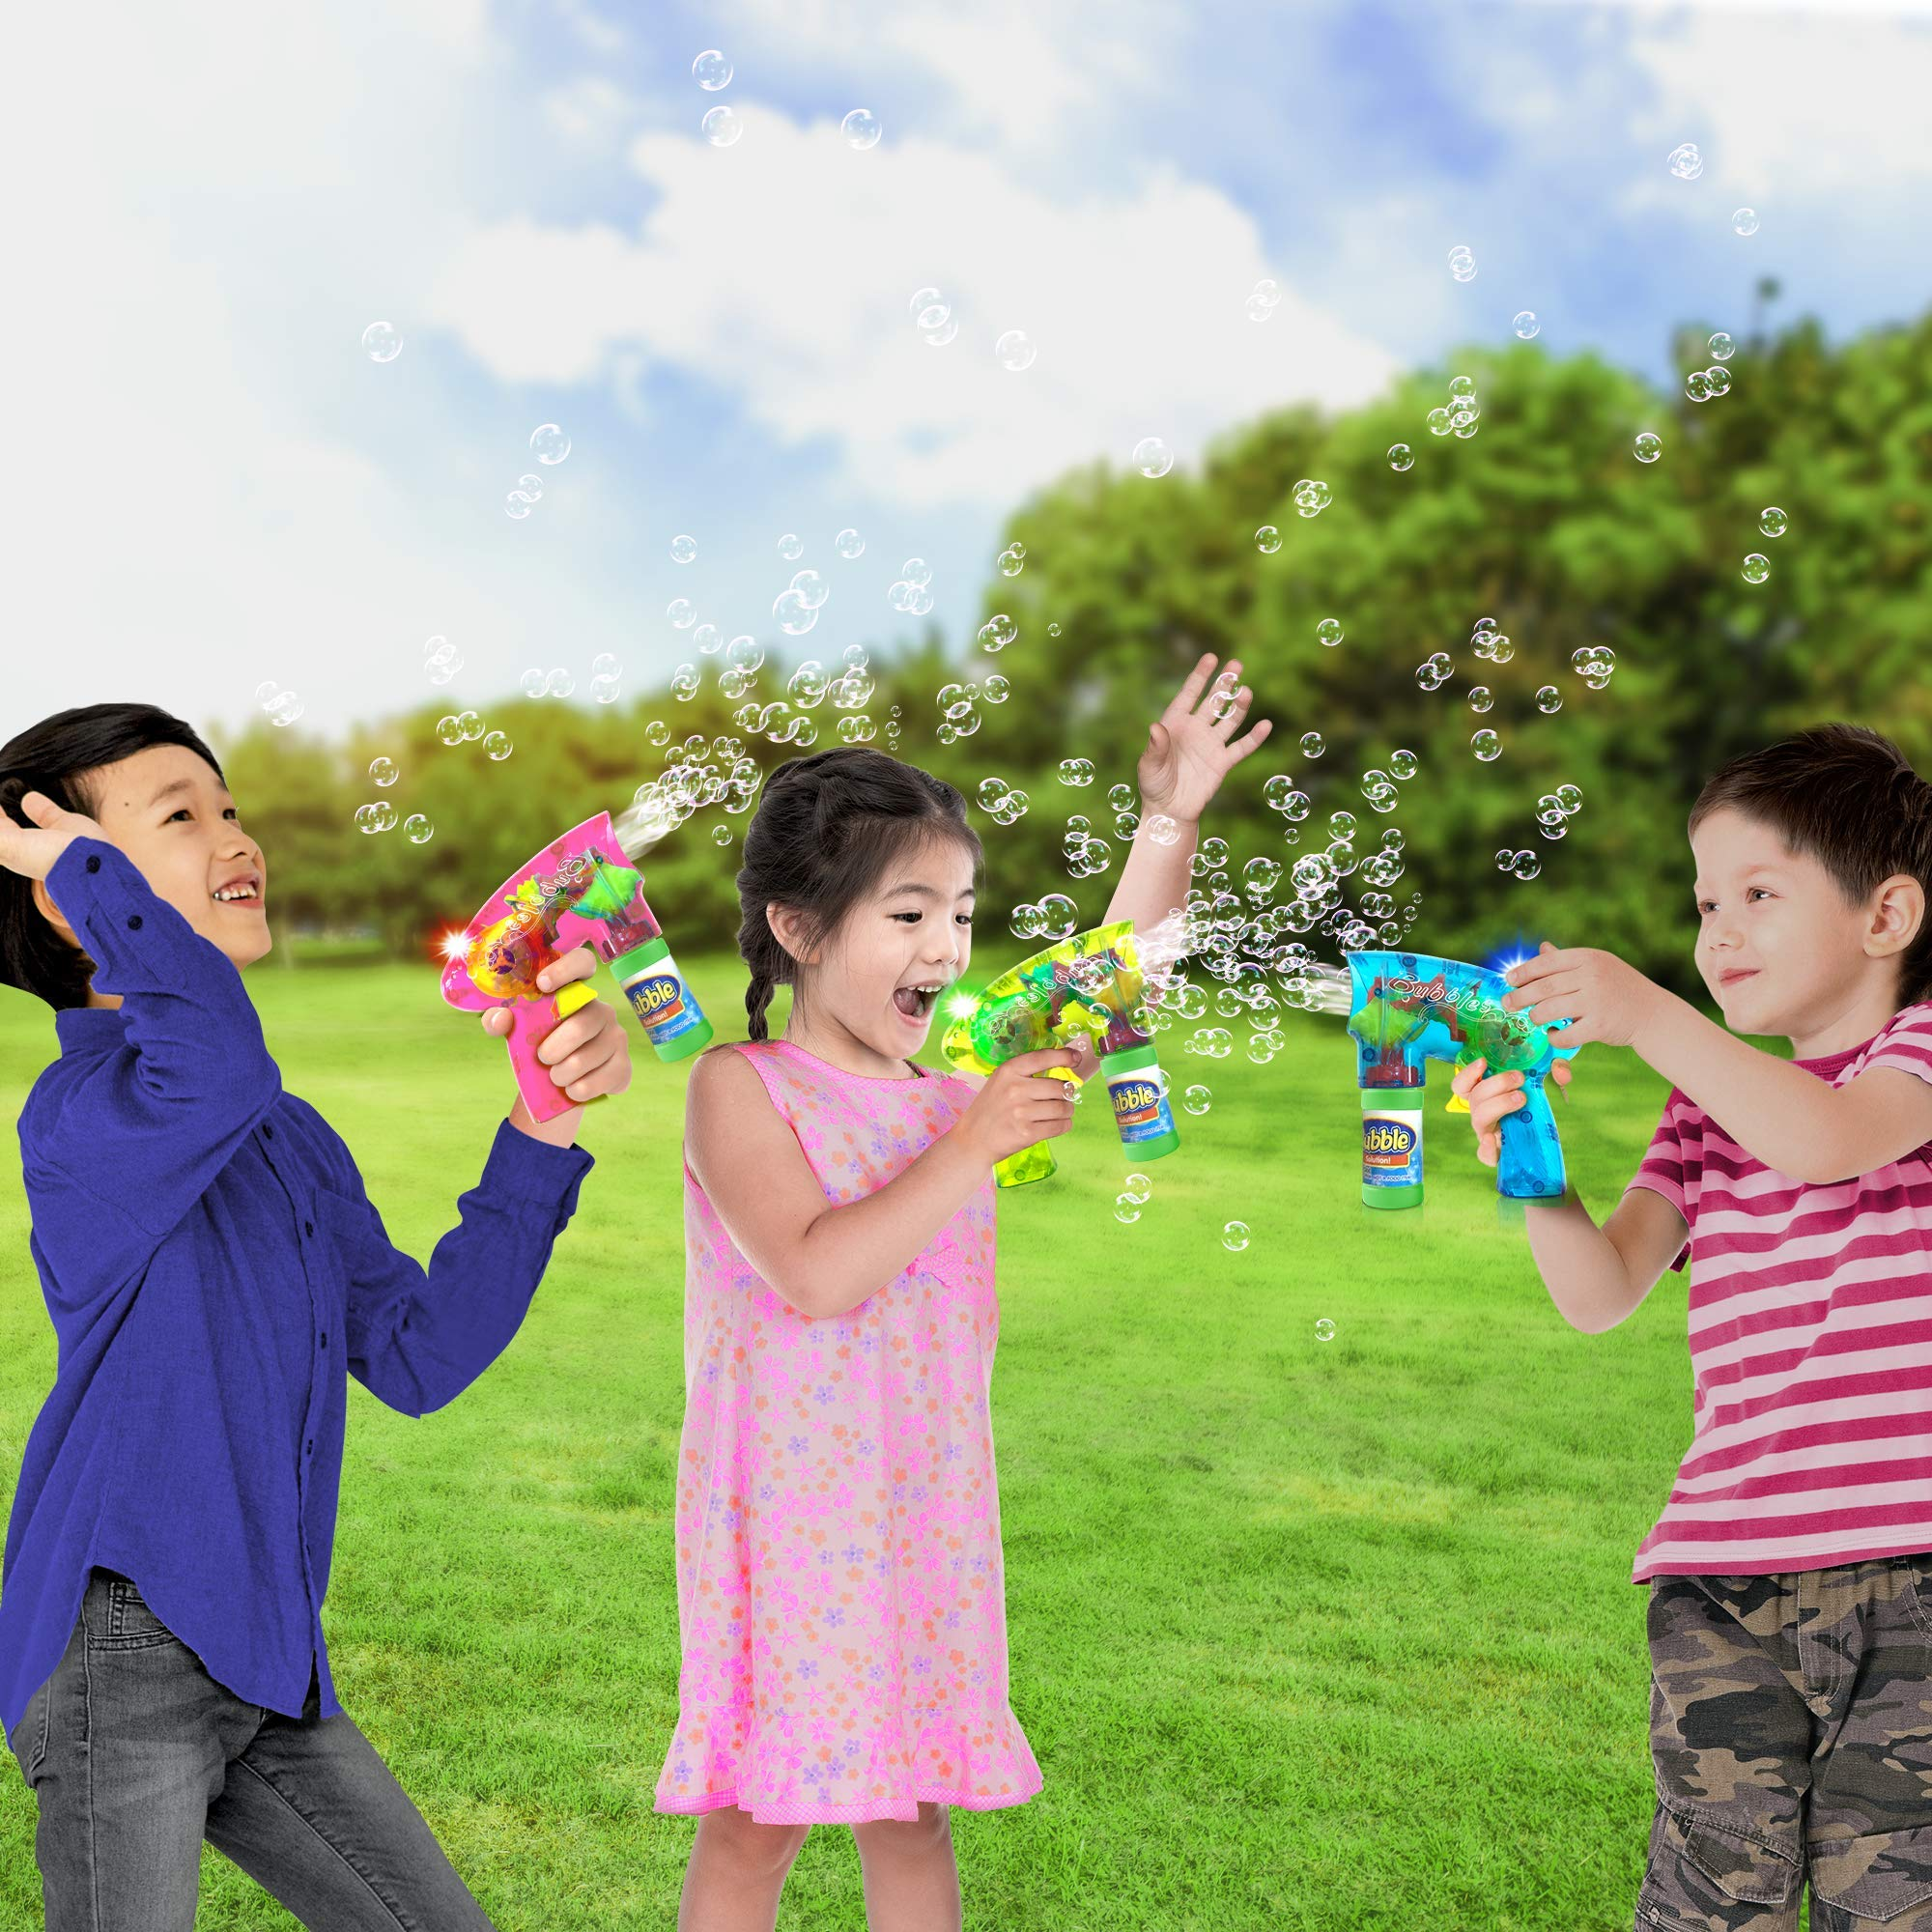 ArtCreativity Friction Powered Light Up Bubble Blaster Set (Set of 3) | Includes 3 LED Bubbles Guns & 6 Bottles of Bubble Fluid | Outdoor, Indoor Fun | Gift Idea, Party Activity | No Batteries Needed by ArtCreativity (Image #5)